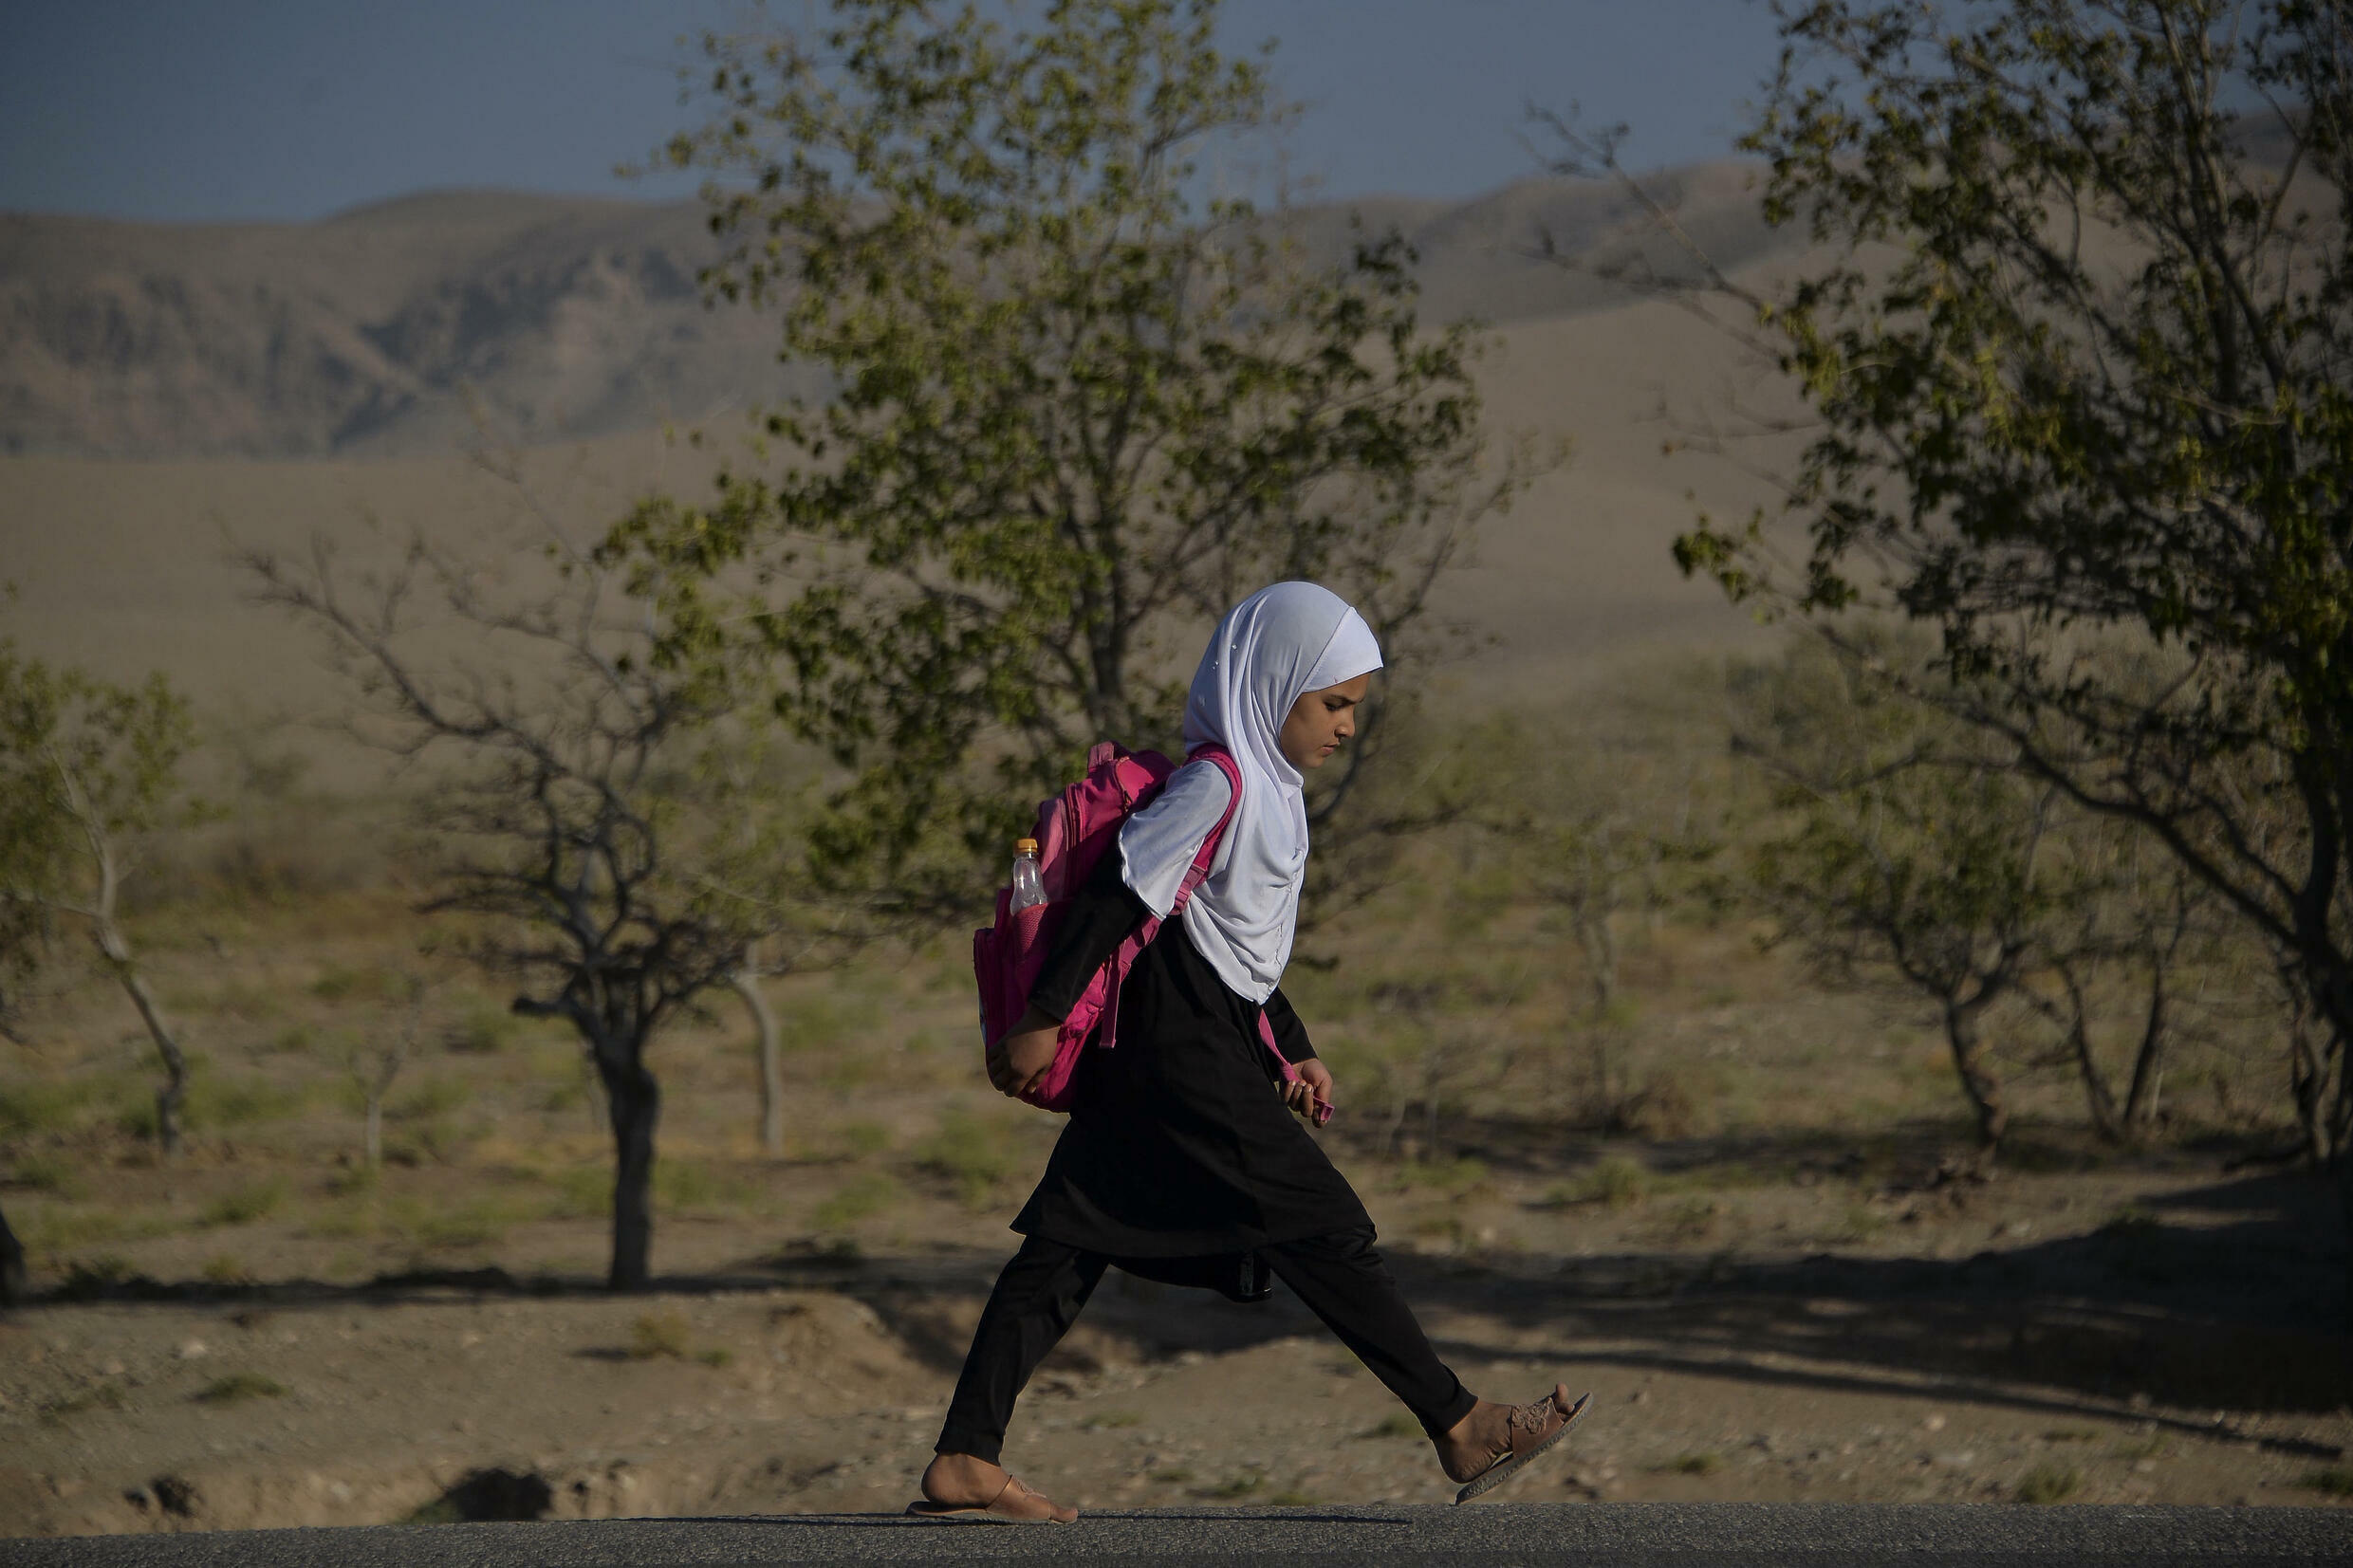 Girls have returned to some secondary schools in a northern province of Afghanistan, but they remain barred from classrooms in much of the country